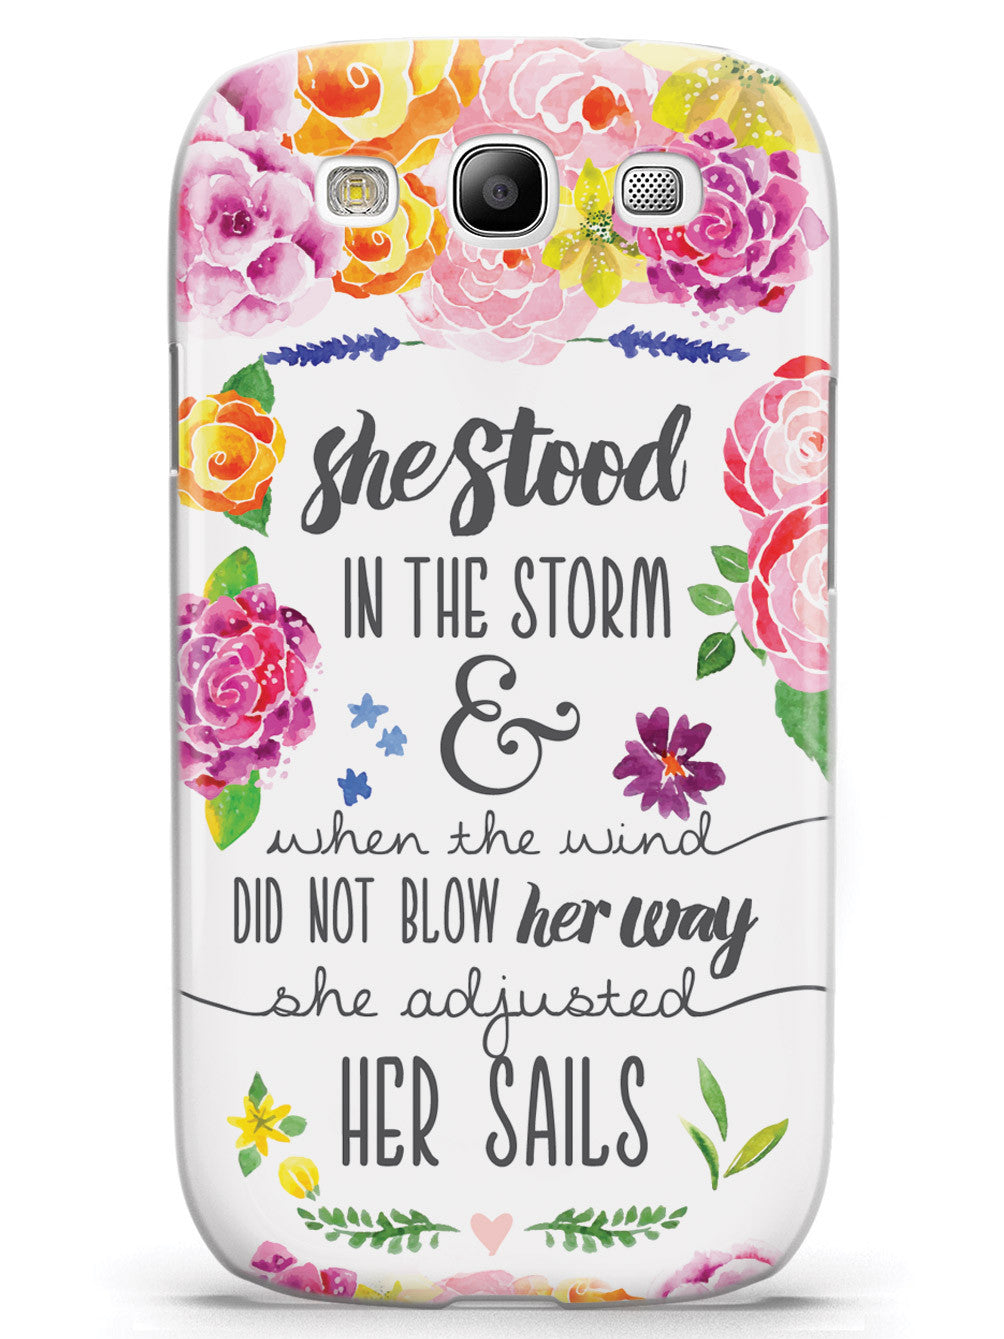 She Stood In The Storm - Elizabeth Edwards Quote Case